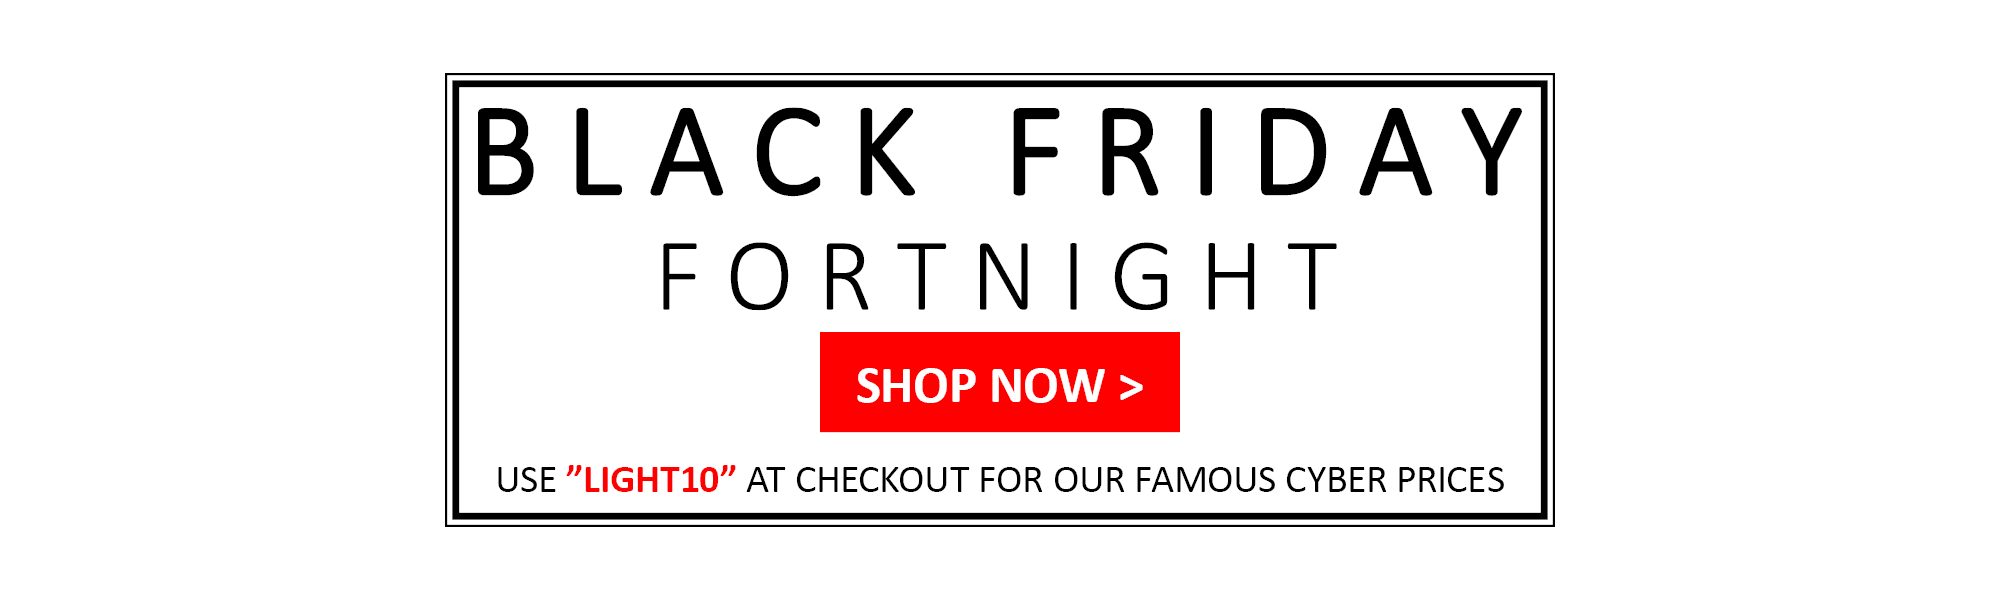 Black Friday Deals. Save 10% off Everything with LIGHT10